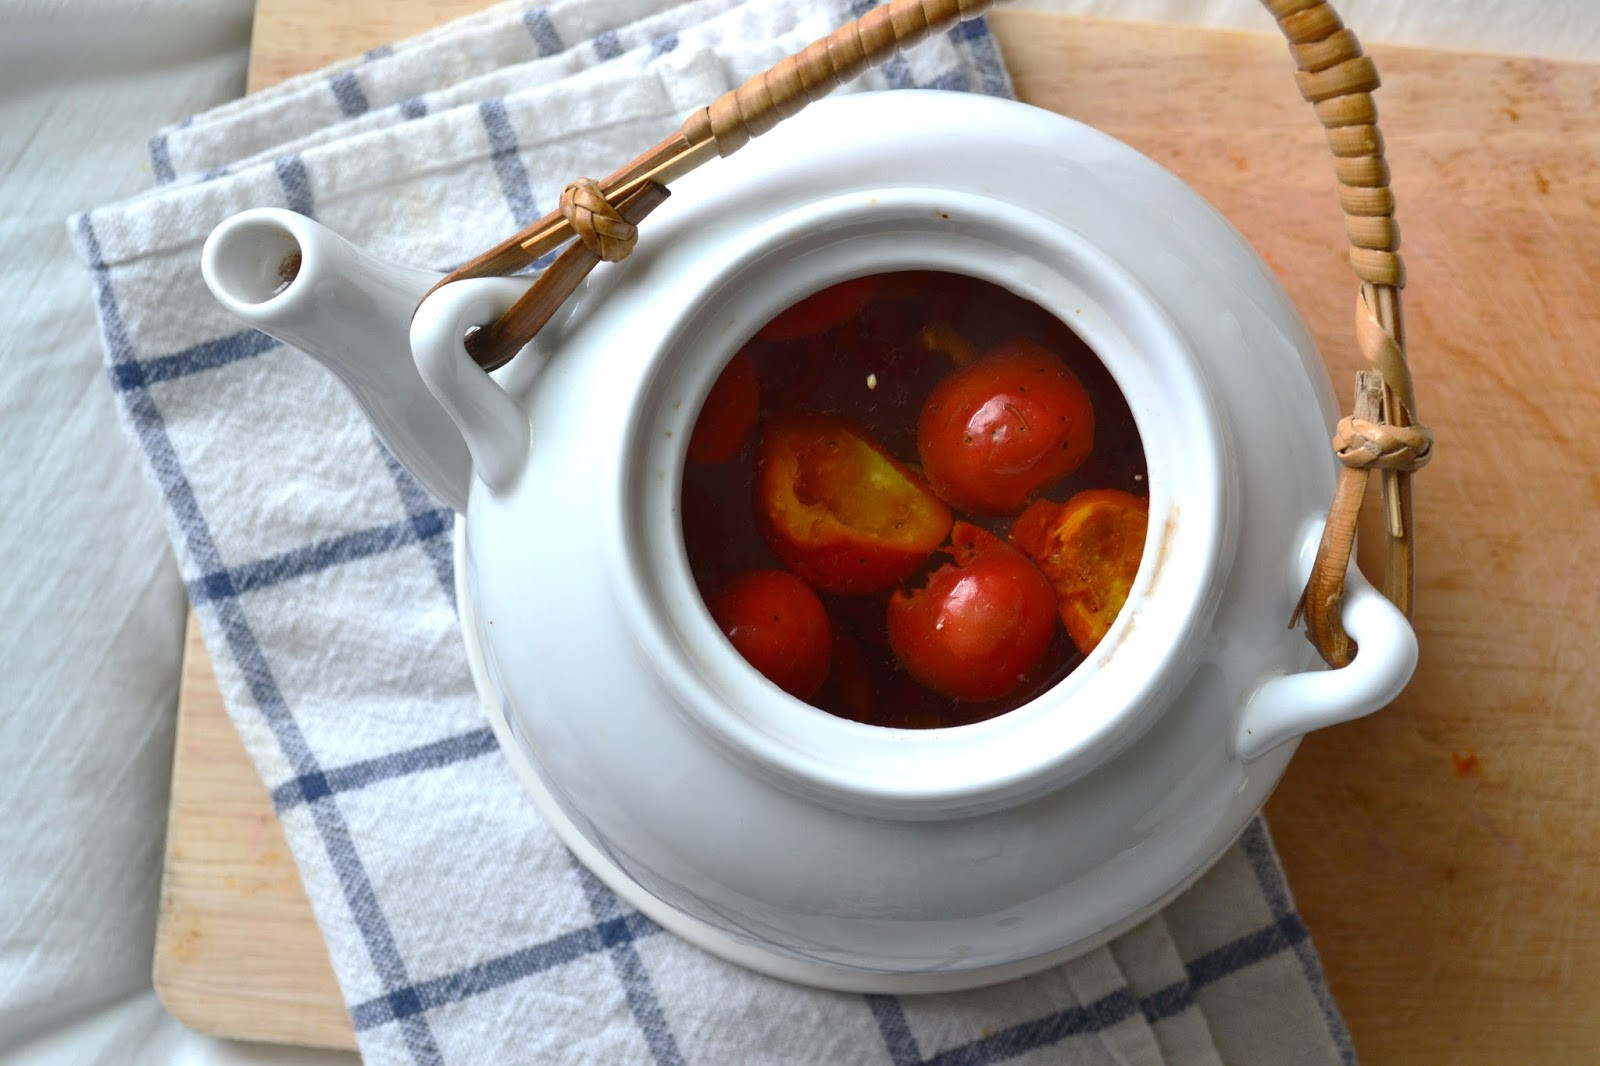 rose hips, citrus fruits, cereals